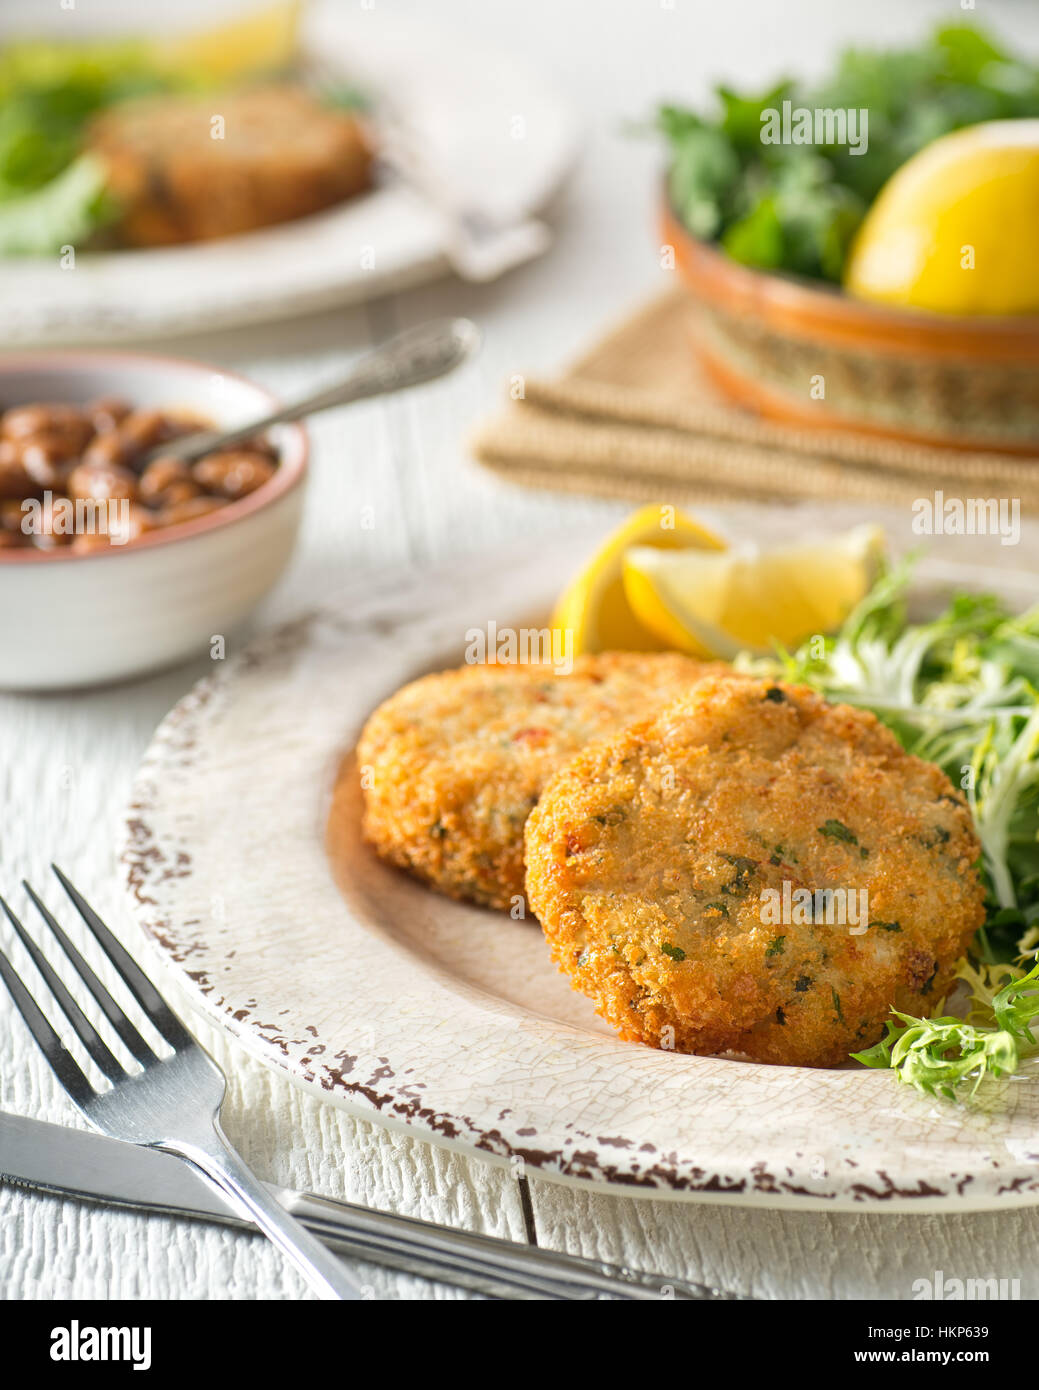 Delicious home made breaded fish cakes with baked beans. - Stock Image